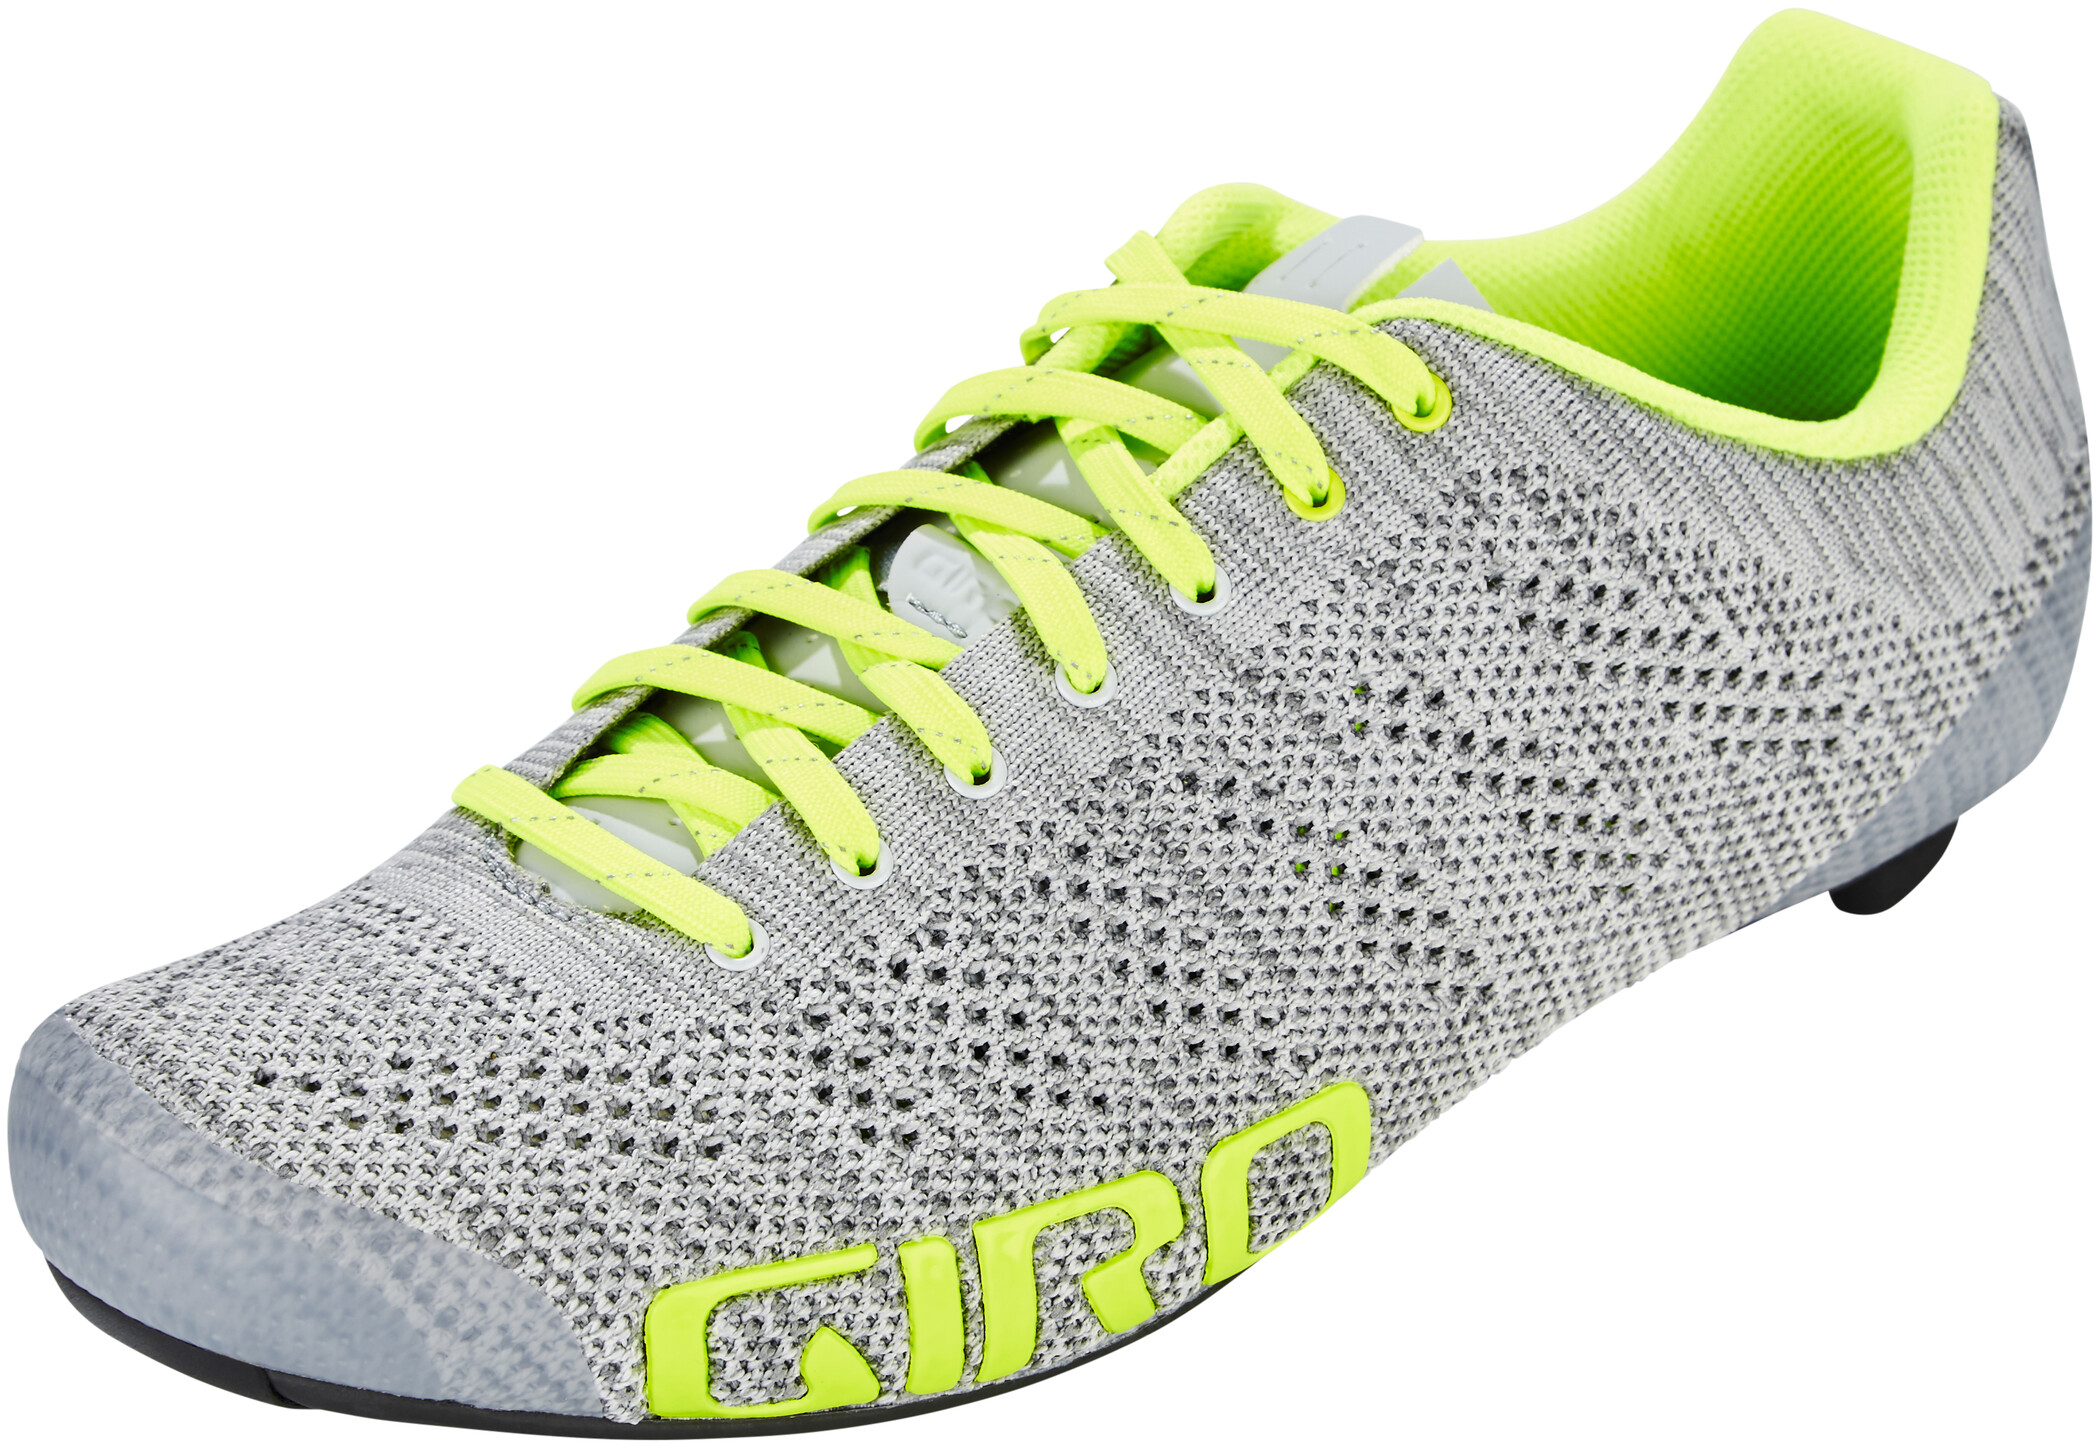 Giro Empire E70 Knit Sko Herrer, grey heather/highlight yellow (2020) | Shoes and overlays